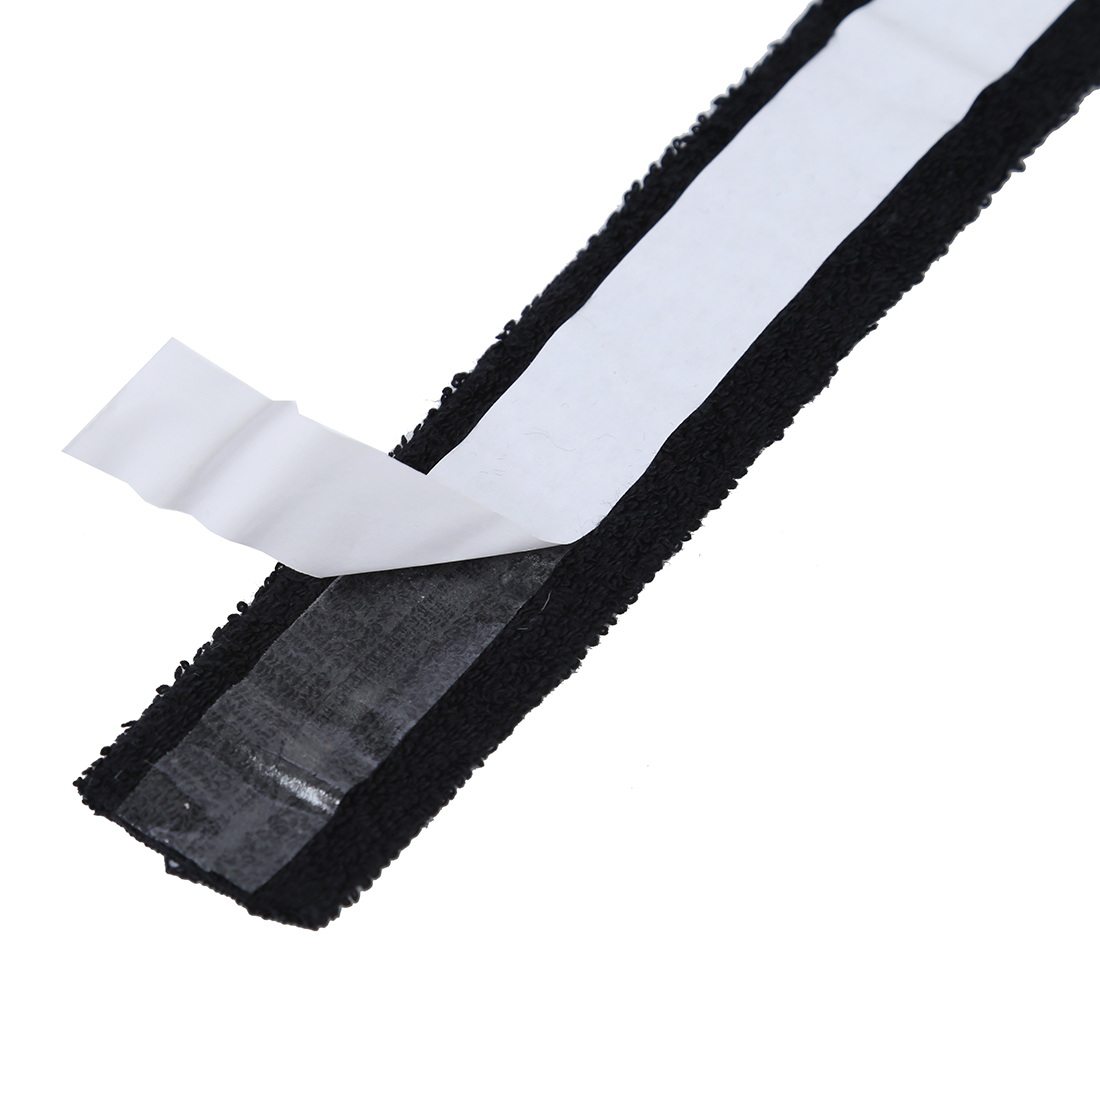 Luxury Sweat Grip Mat Towel: AOLIKES 75cm Long Adhensive Tape Tennis Racket Sweat